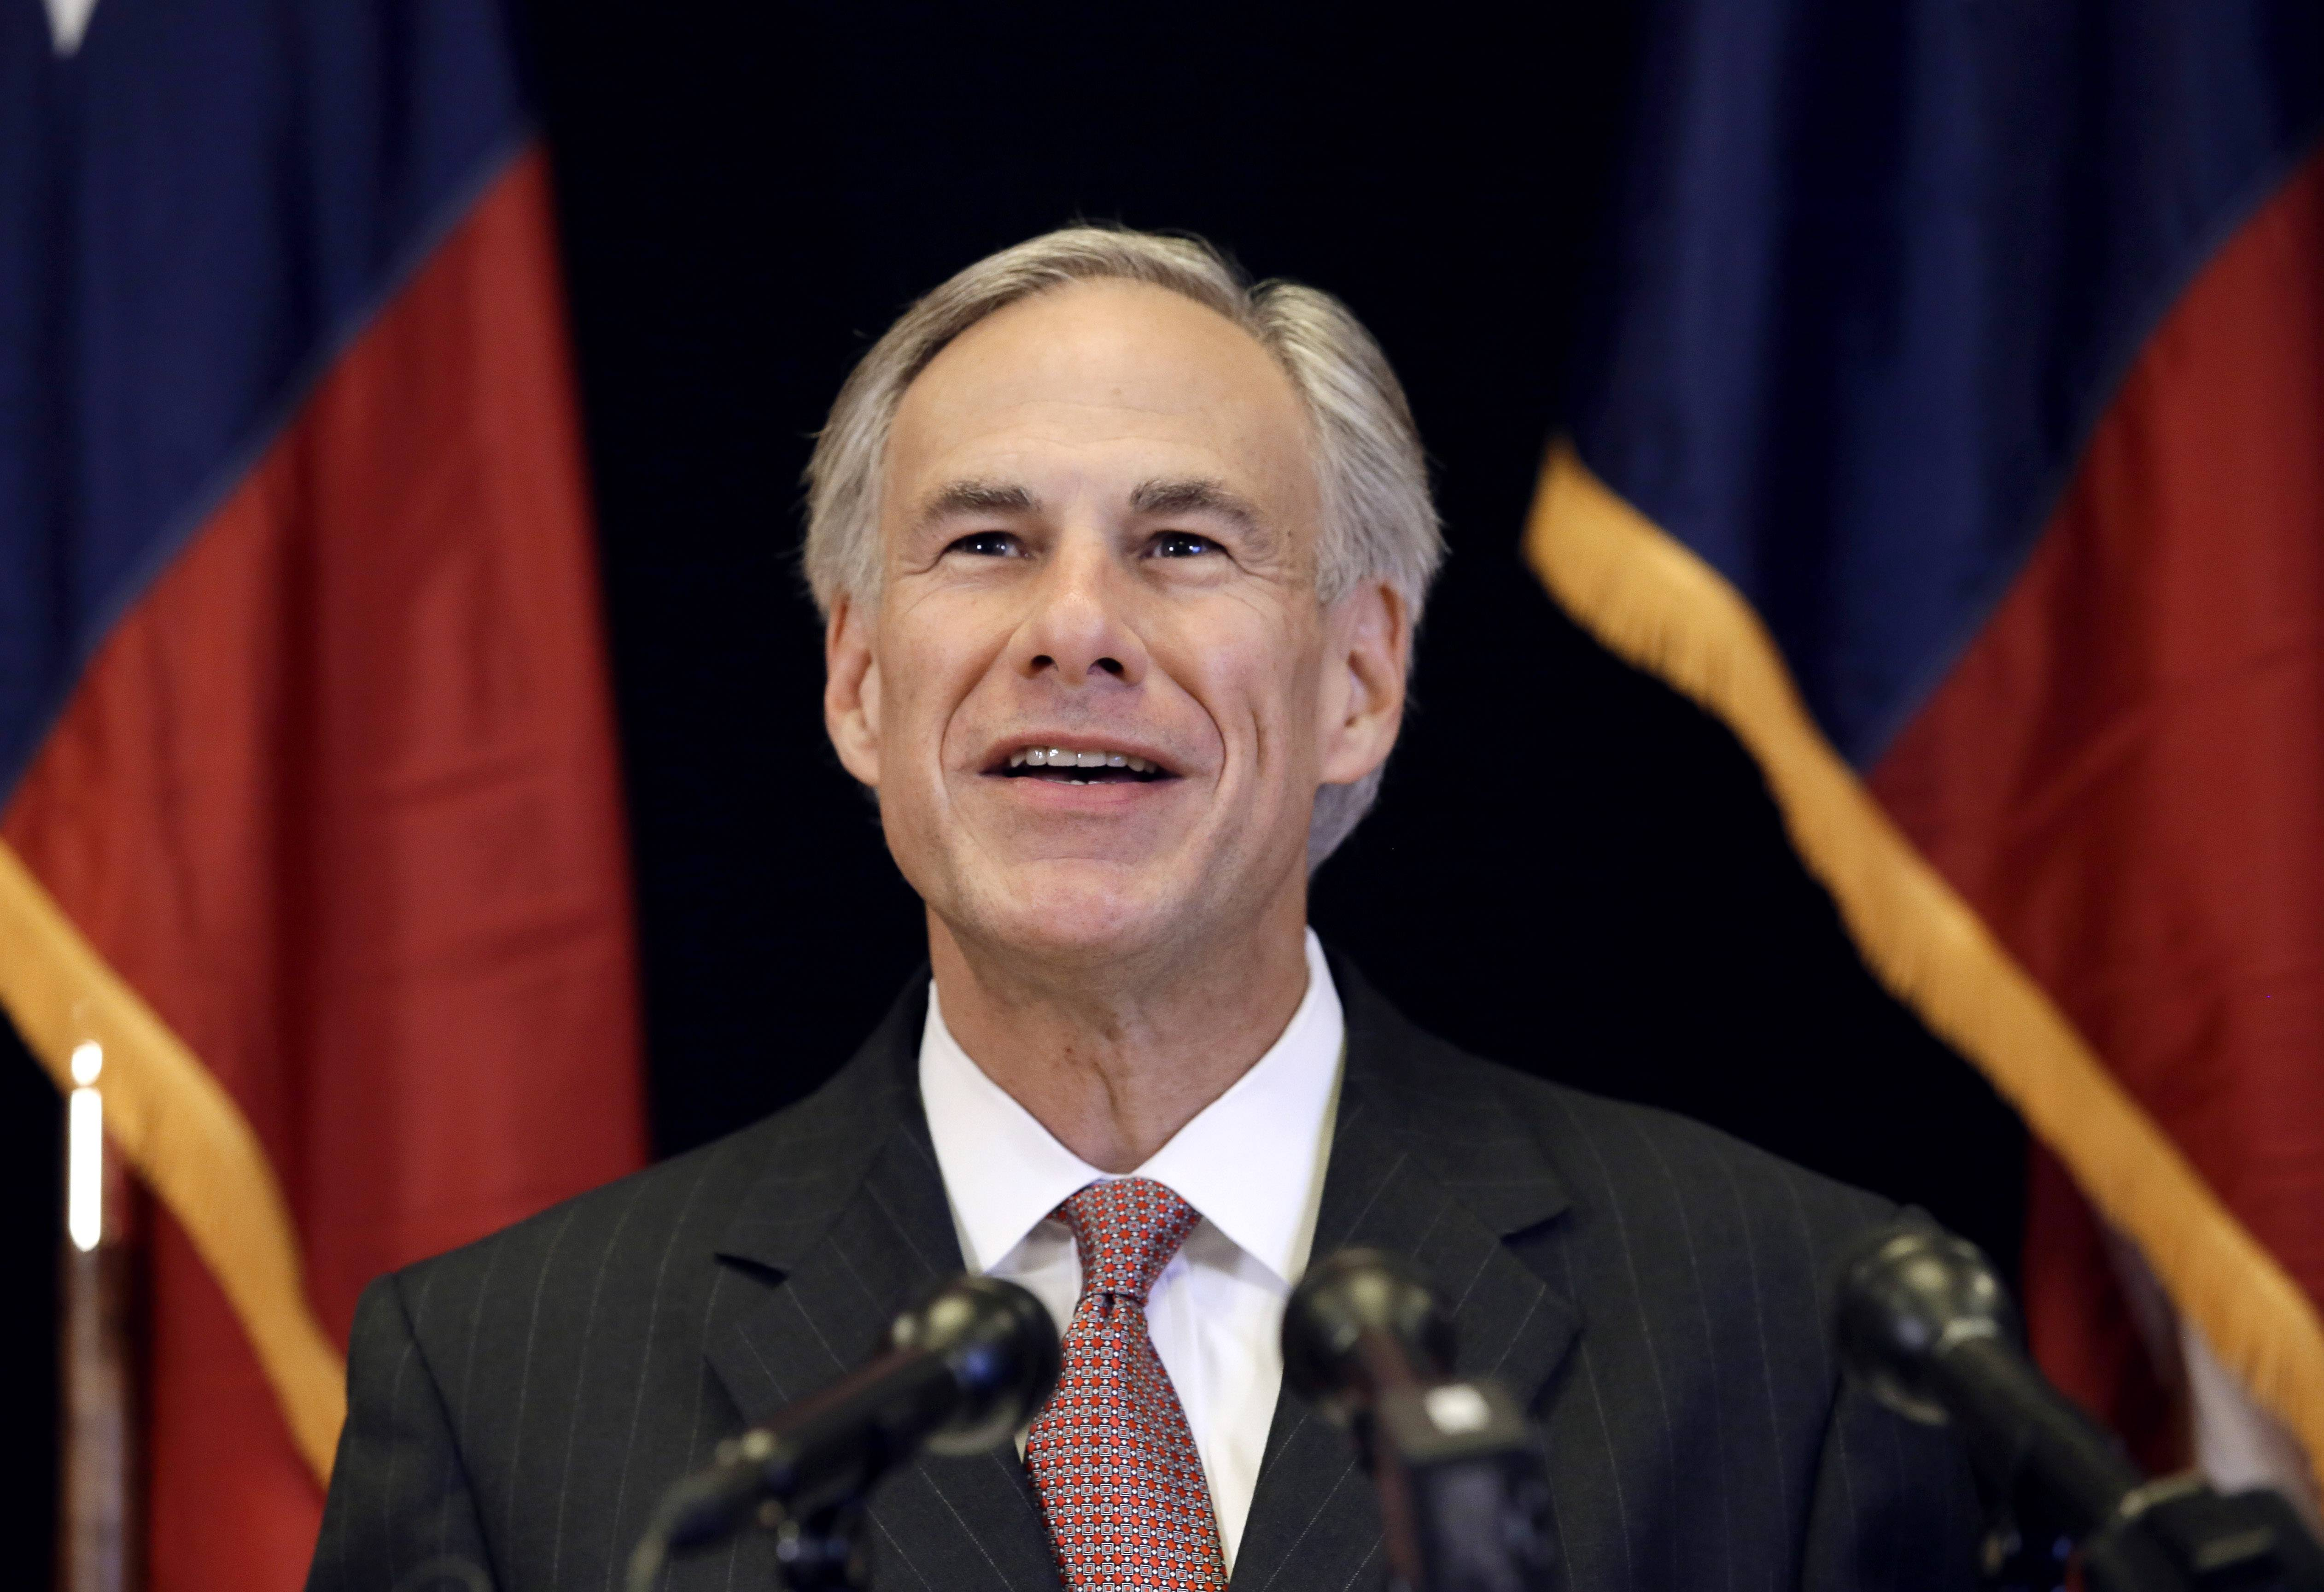 FILE - In this Nov. 4, 2013 file photo, Republican candidate for governor, Texas Attorney General Greg Abbott smiles as he responds to a reporter's questions during a news conference in Dallas. In the nation's first primary of the season, Texas politicians scramble to fill a void left by an extraordinary shakeup in state offices.